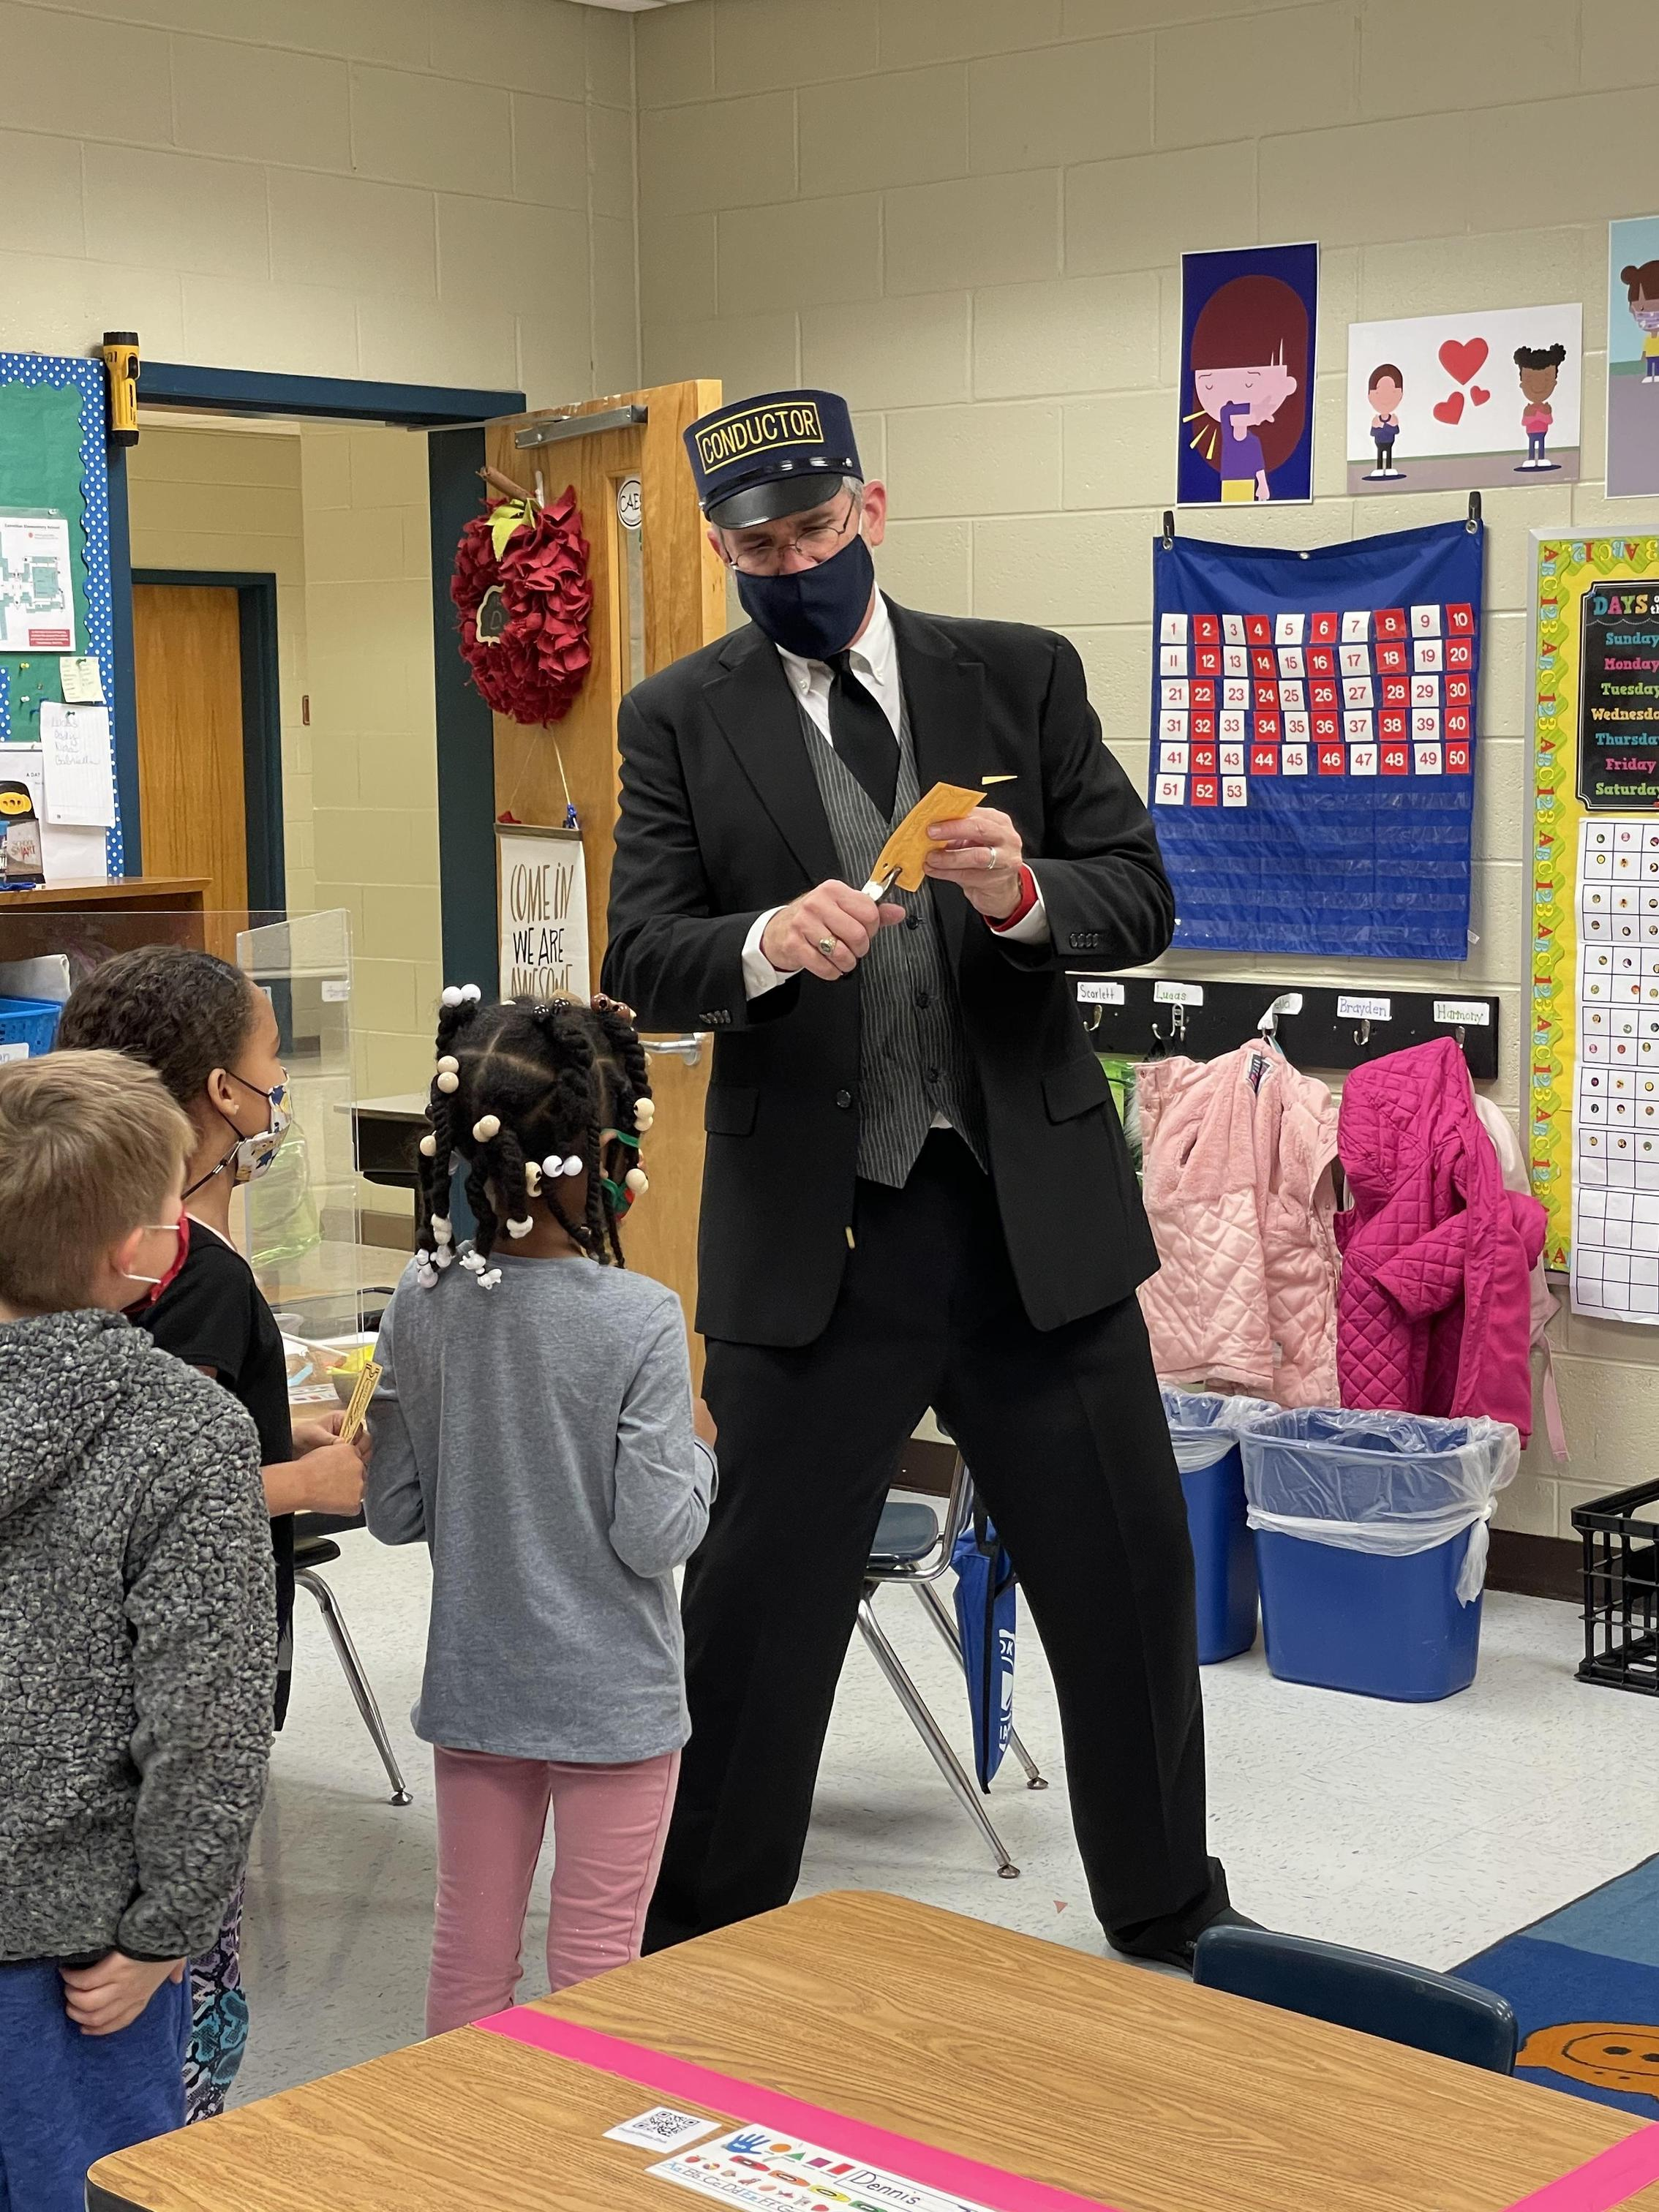 The Conductor of the Polar Express visits classes to punch tickets!